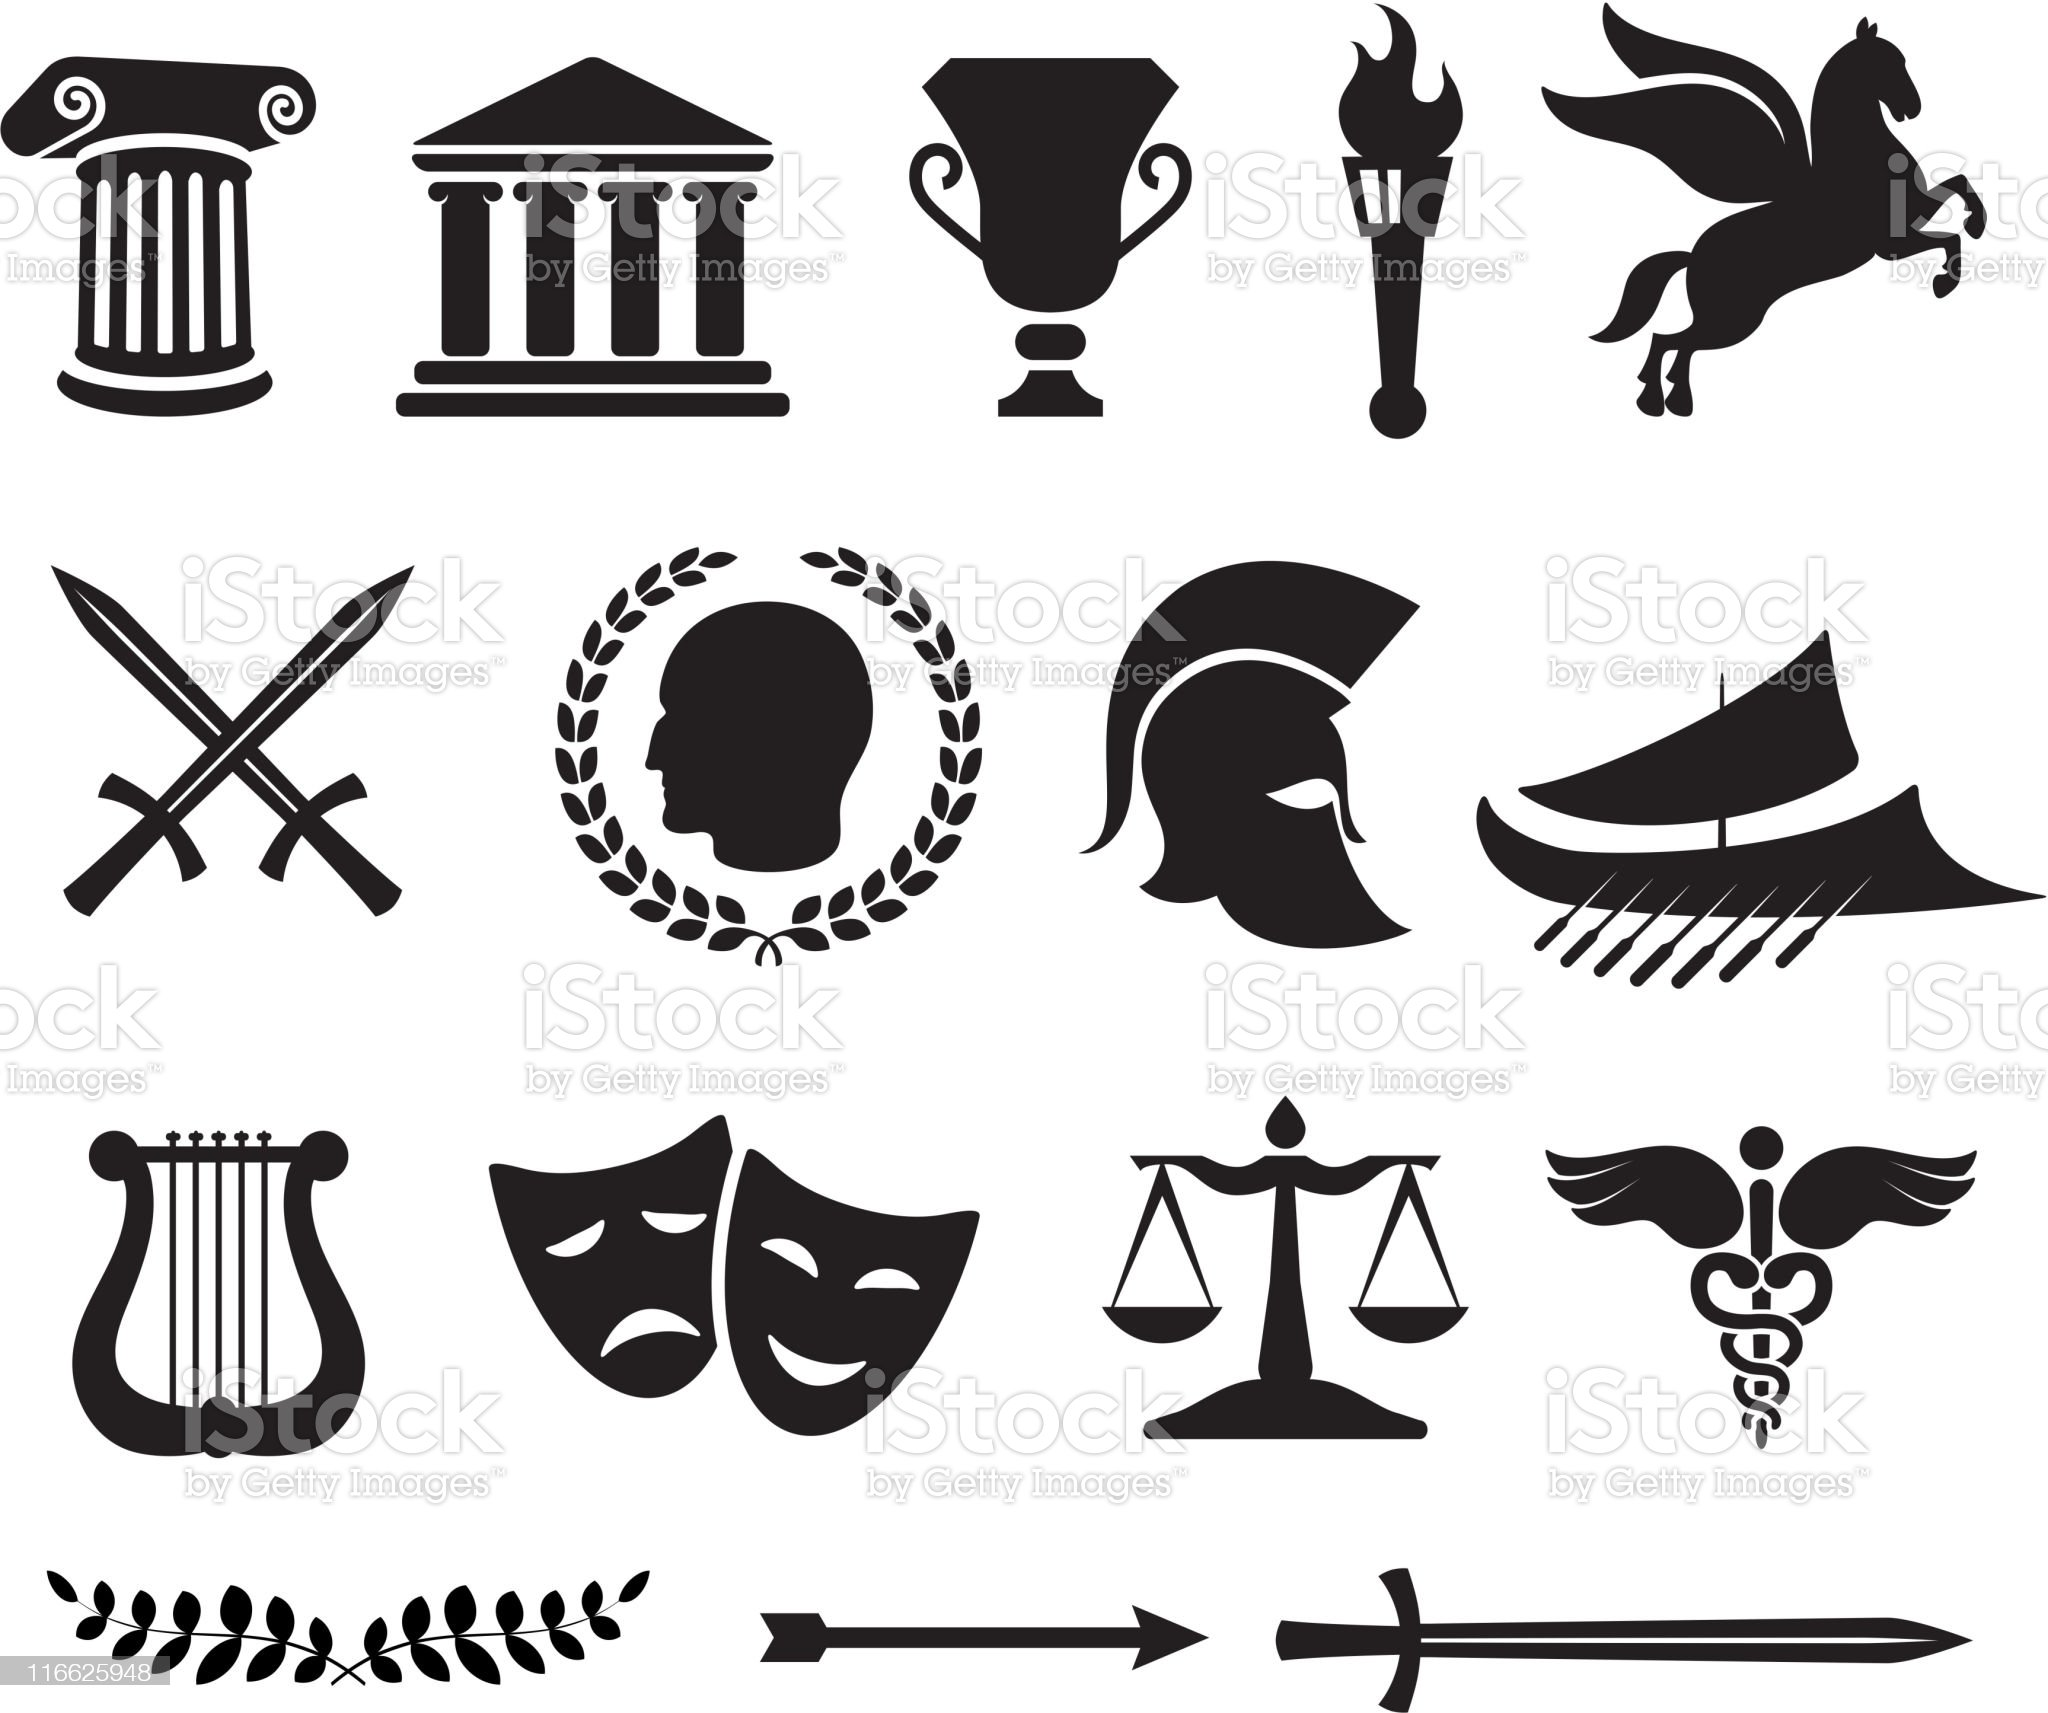 Ancient Greek royalty free vector illustration royalty-free stock vector art